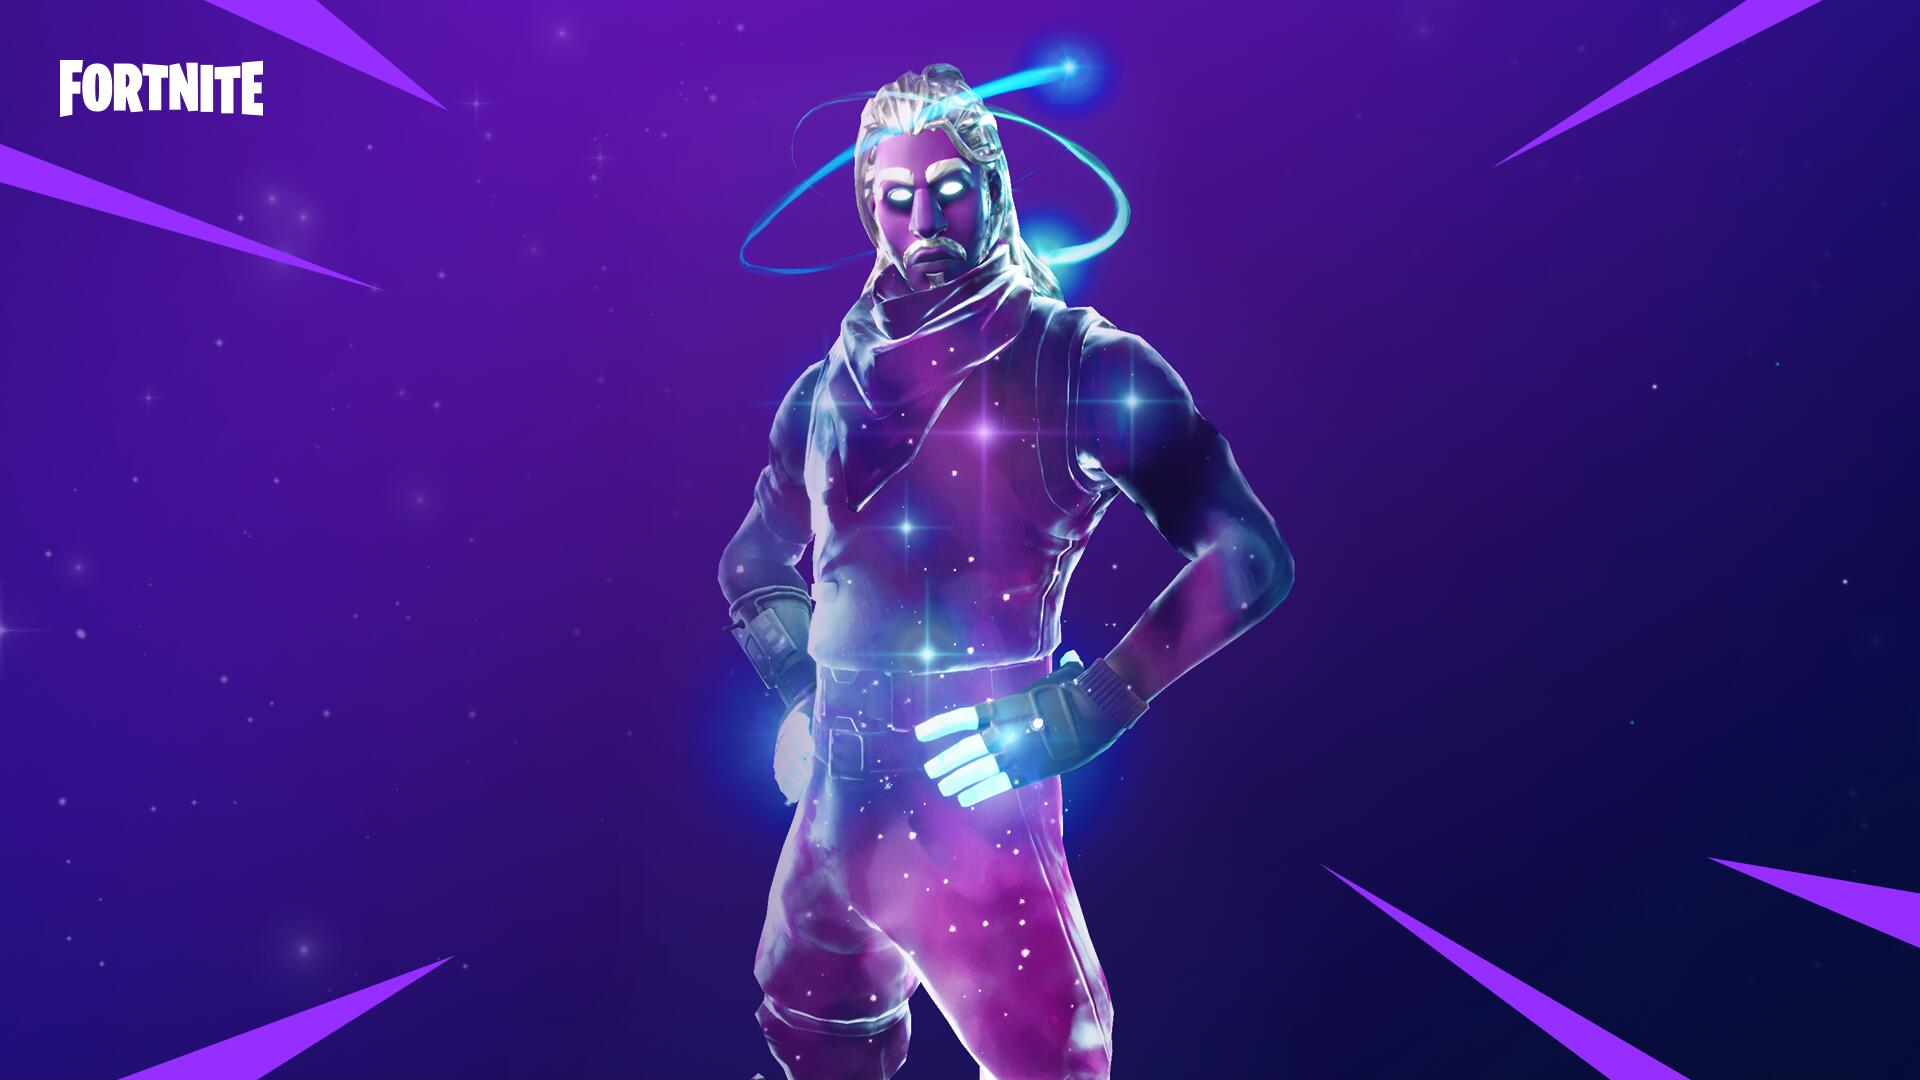 How to Get Fortnite Galaxy Skin - Samsung Galaxy Skin, Note 9, Tab S4, Android